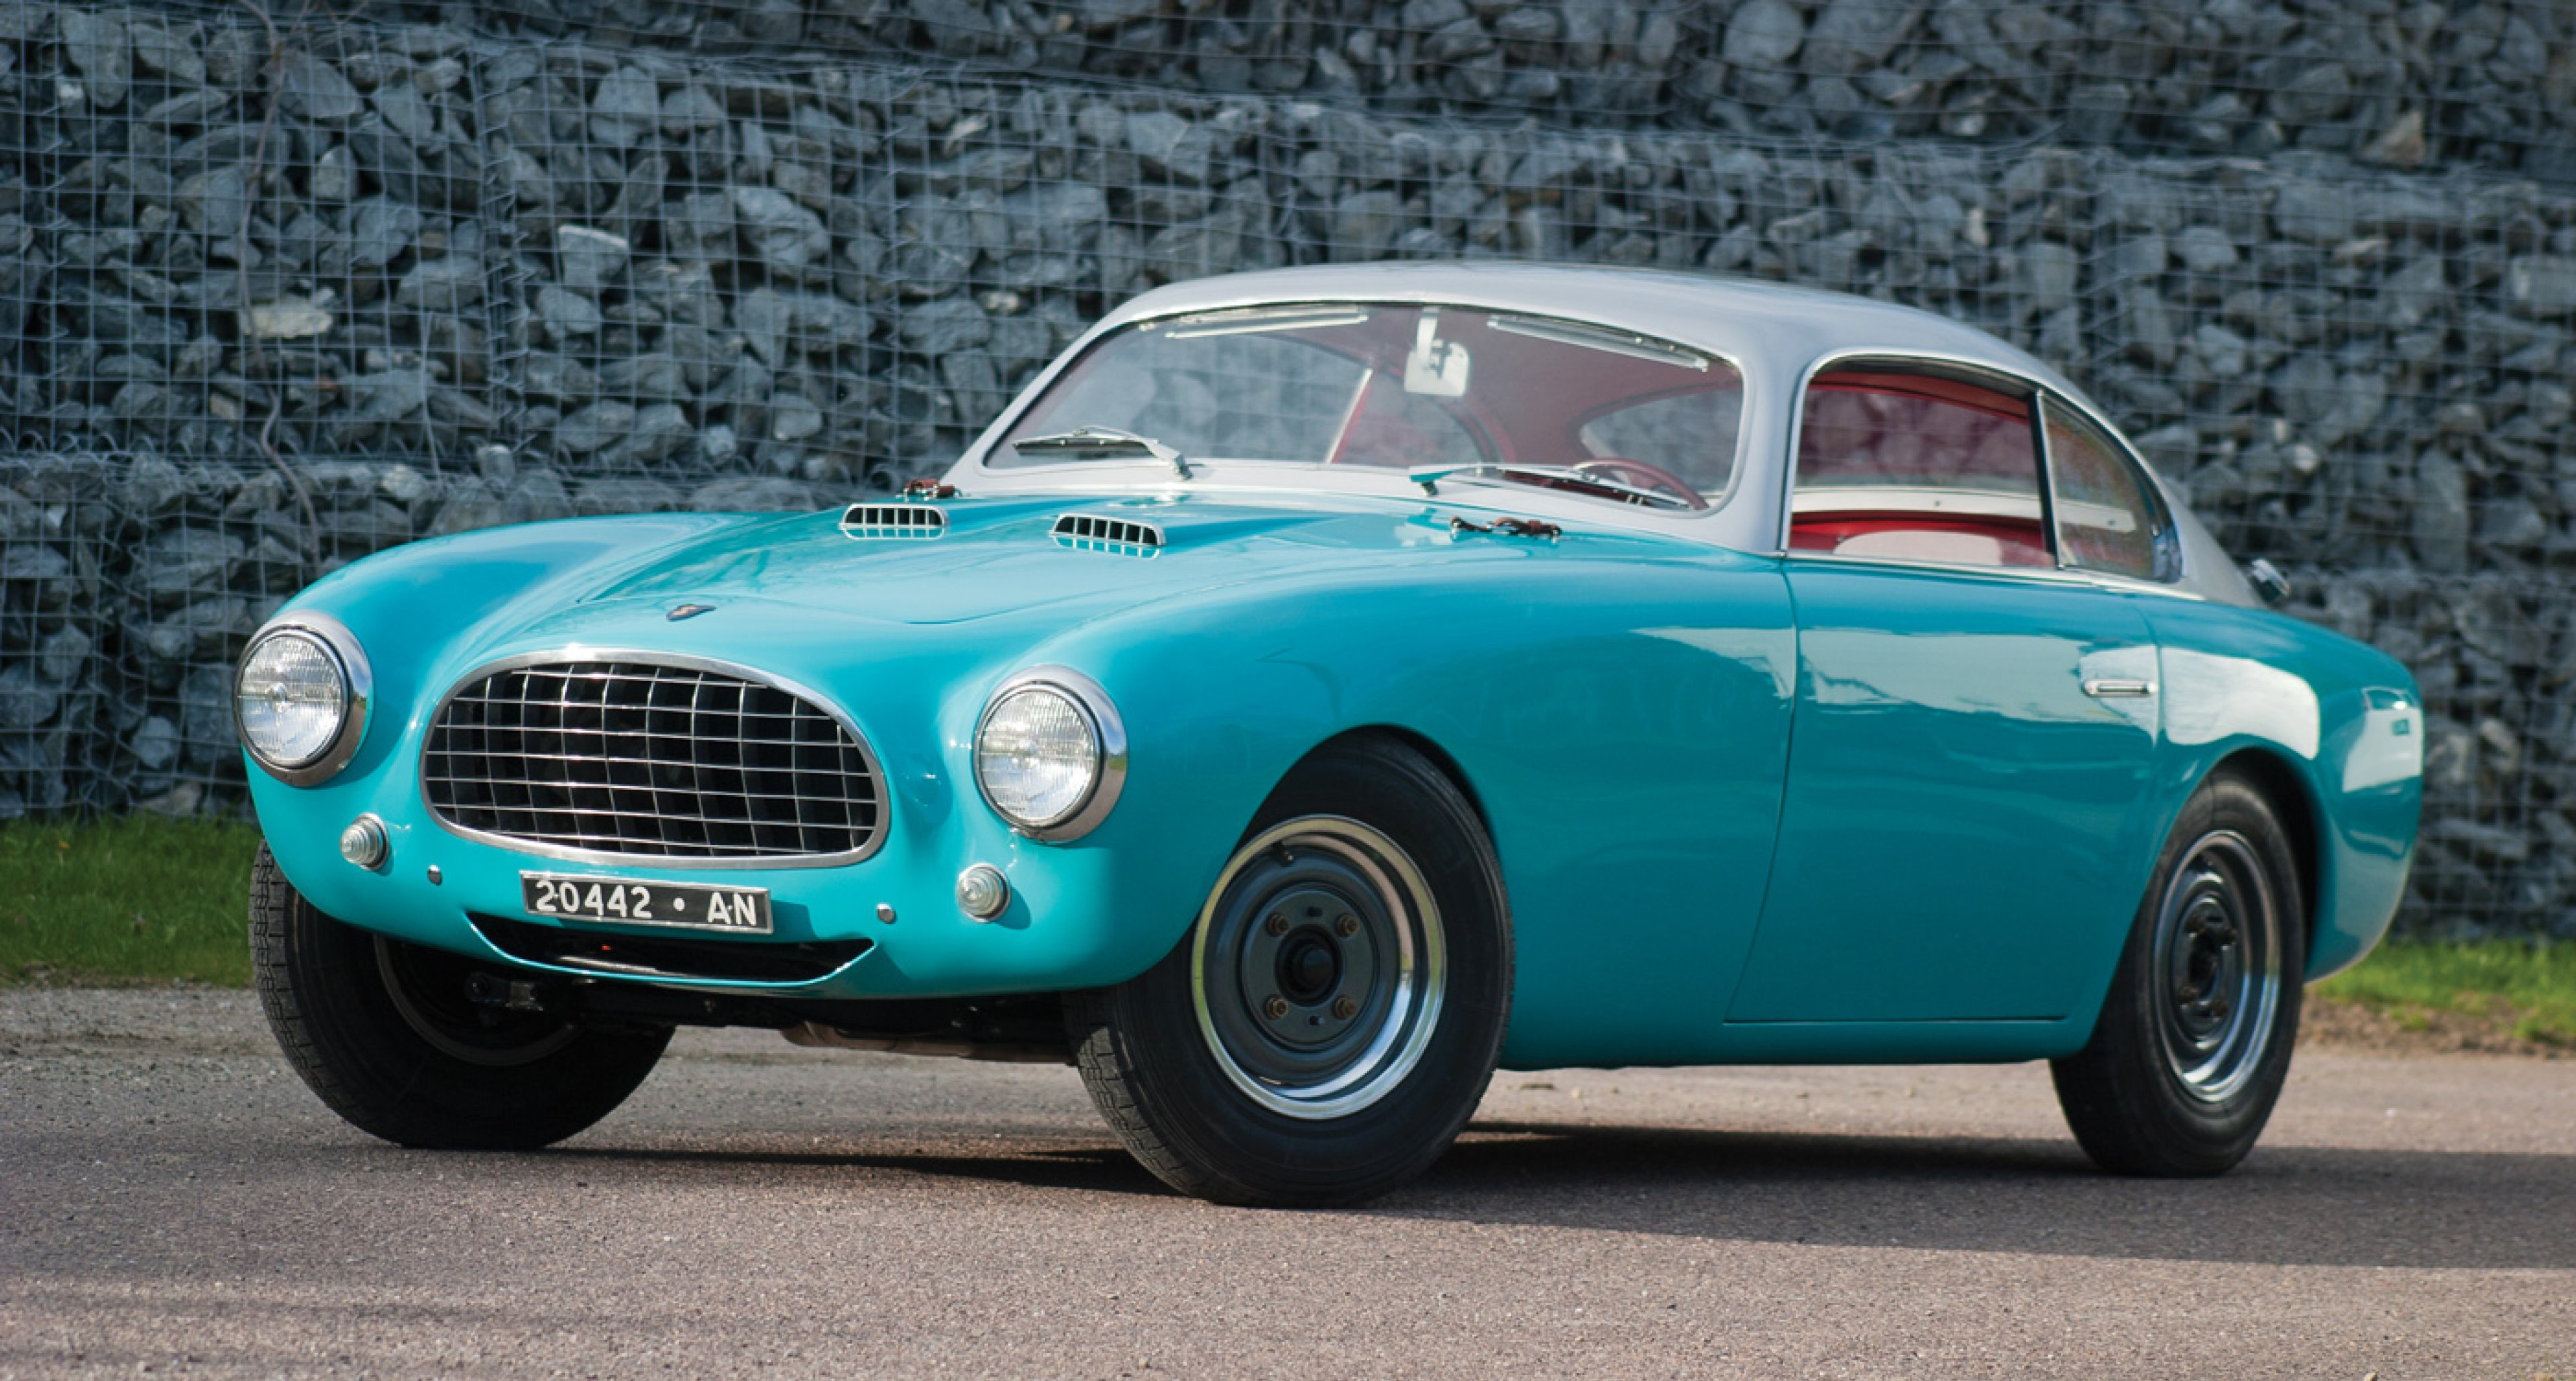 1953 Fiat-Siata 1500 Coupe Speciale by Gilco to be auctioned at RM's Monterey auction 2014